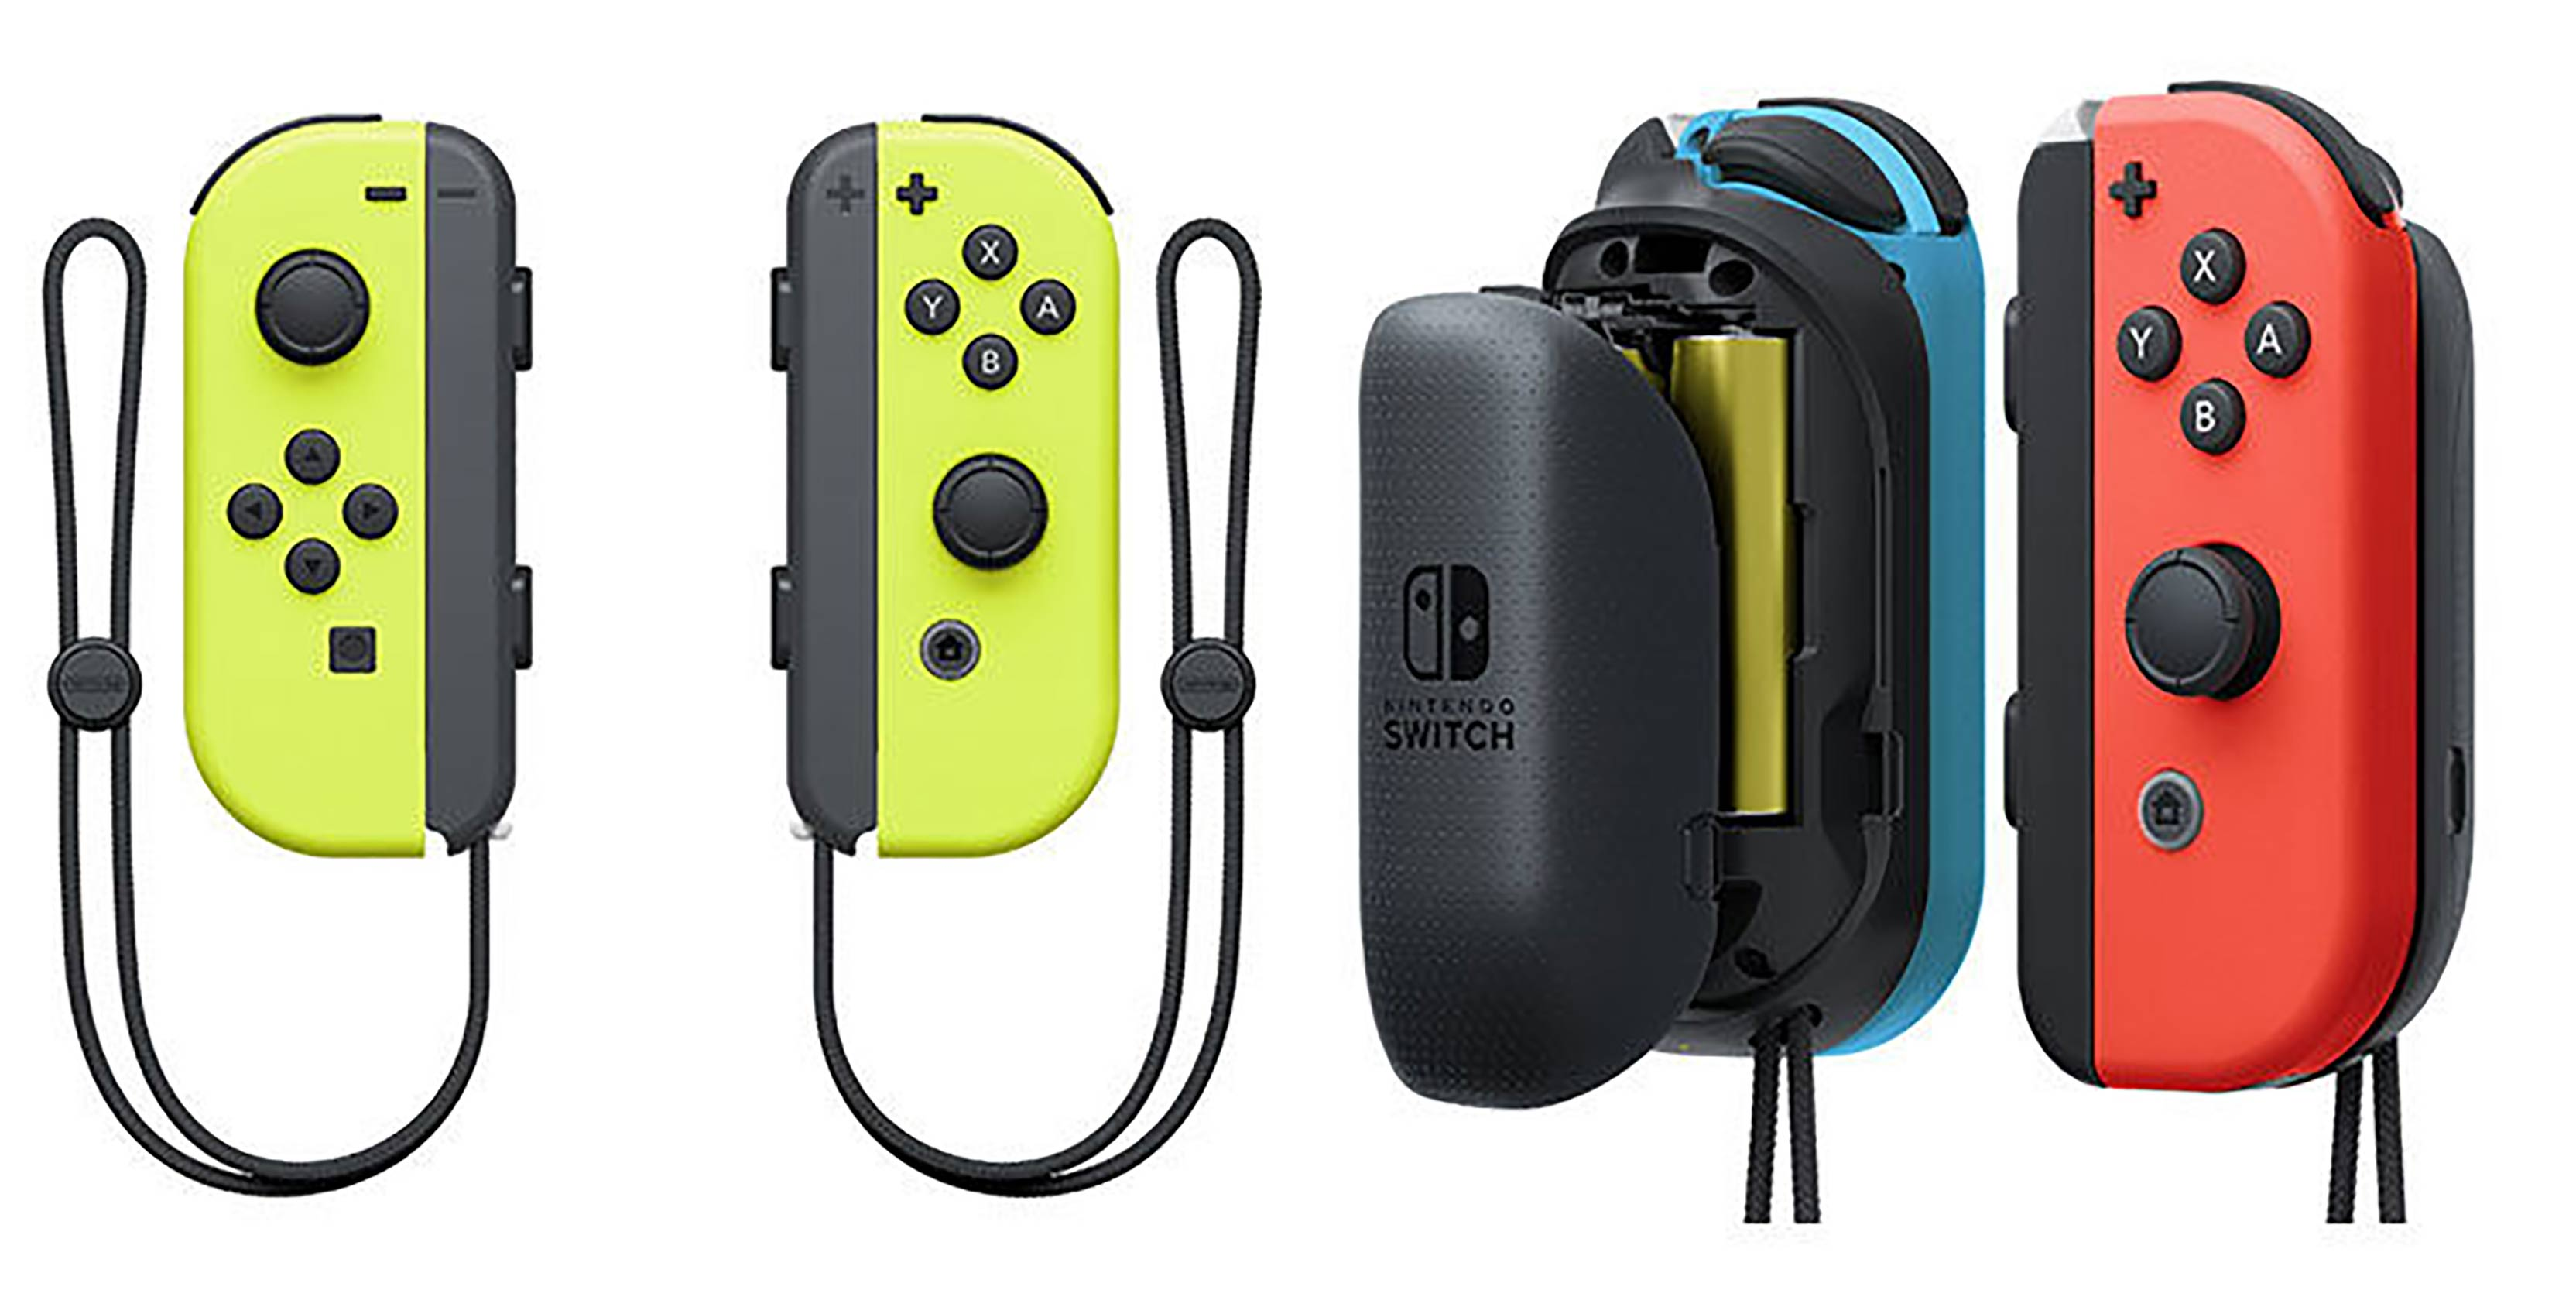 neon yellow joycons with the red joycon